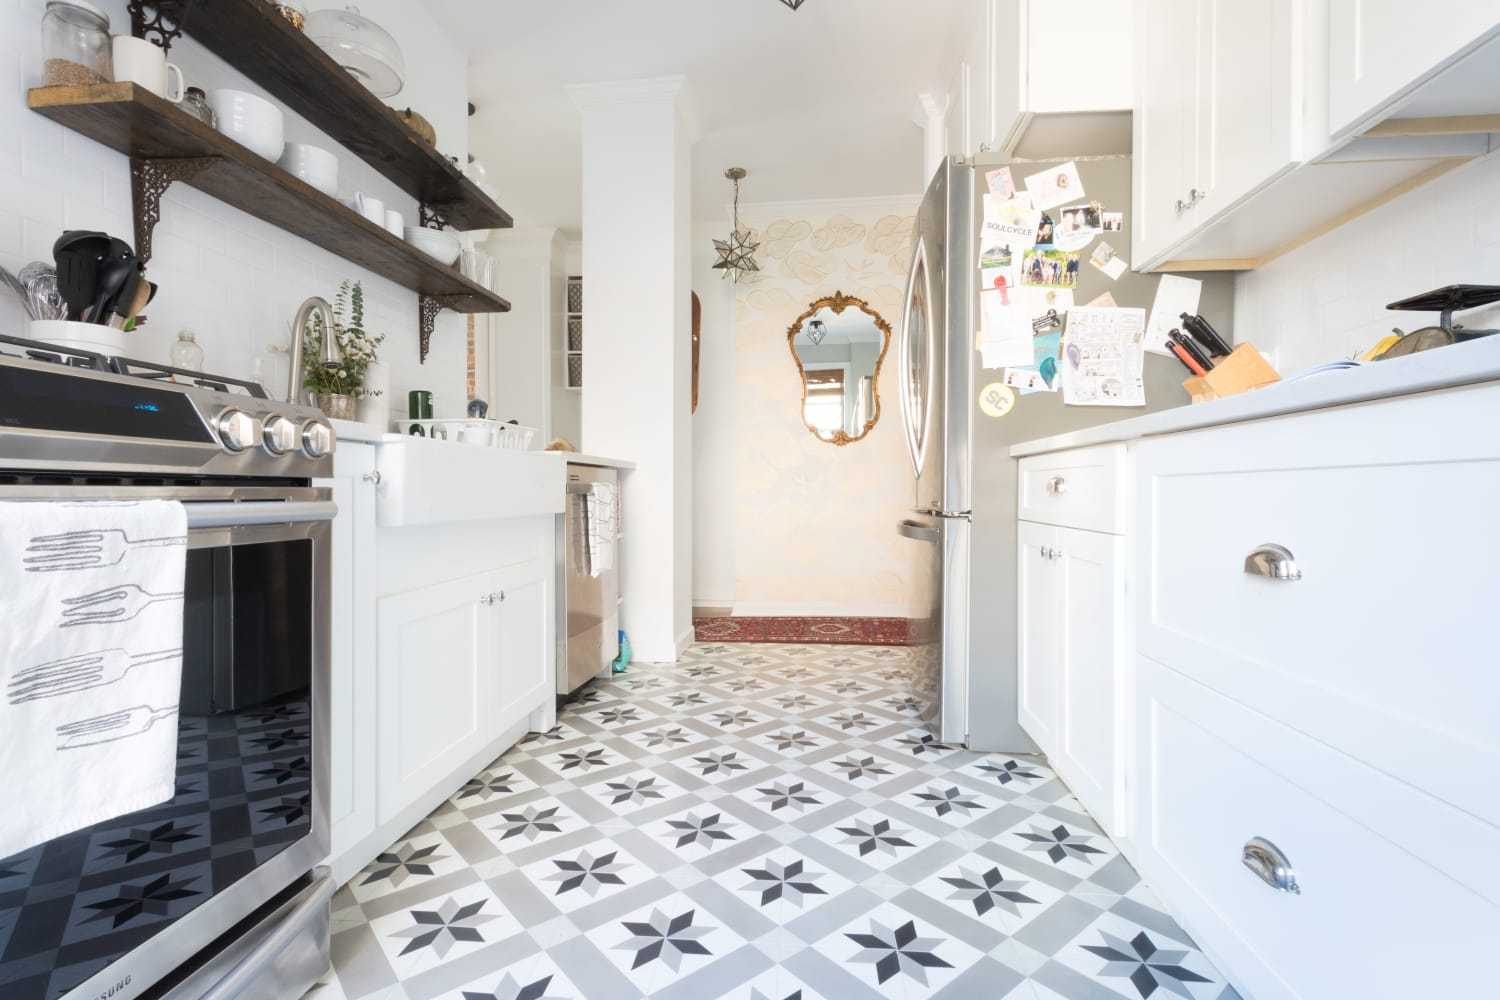 This Old School Kitchen Trend Is Making a Comeback — And We're Into It